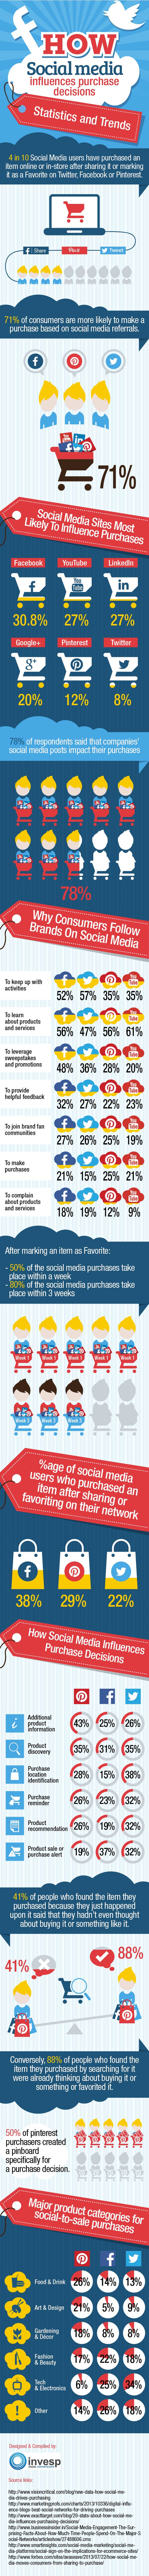 How Social Media Influences Purchase Decisions – Statistics and Trends [Infographic]